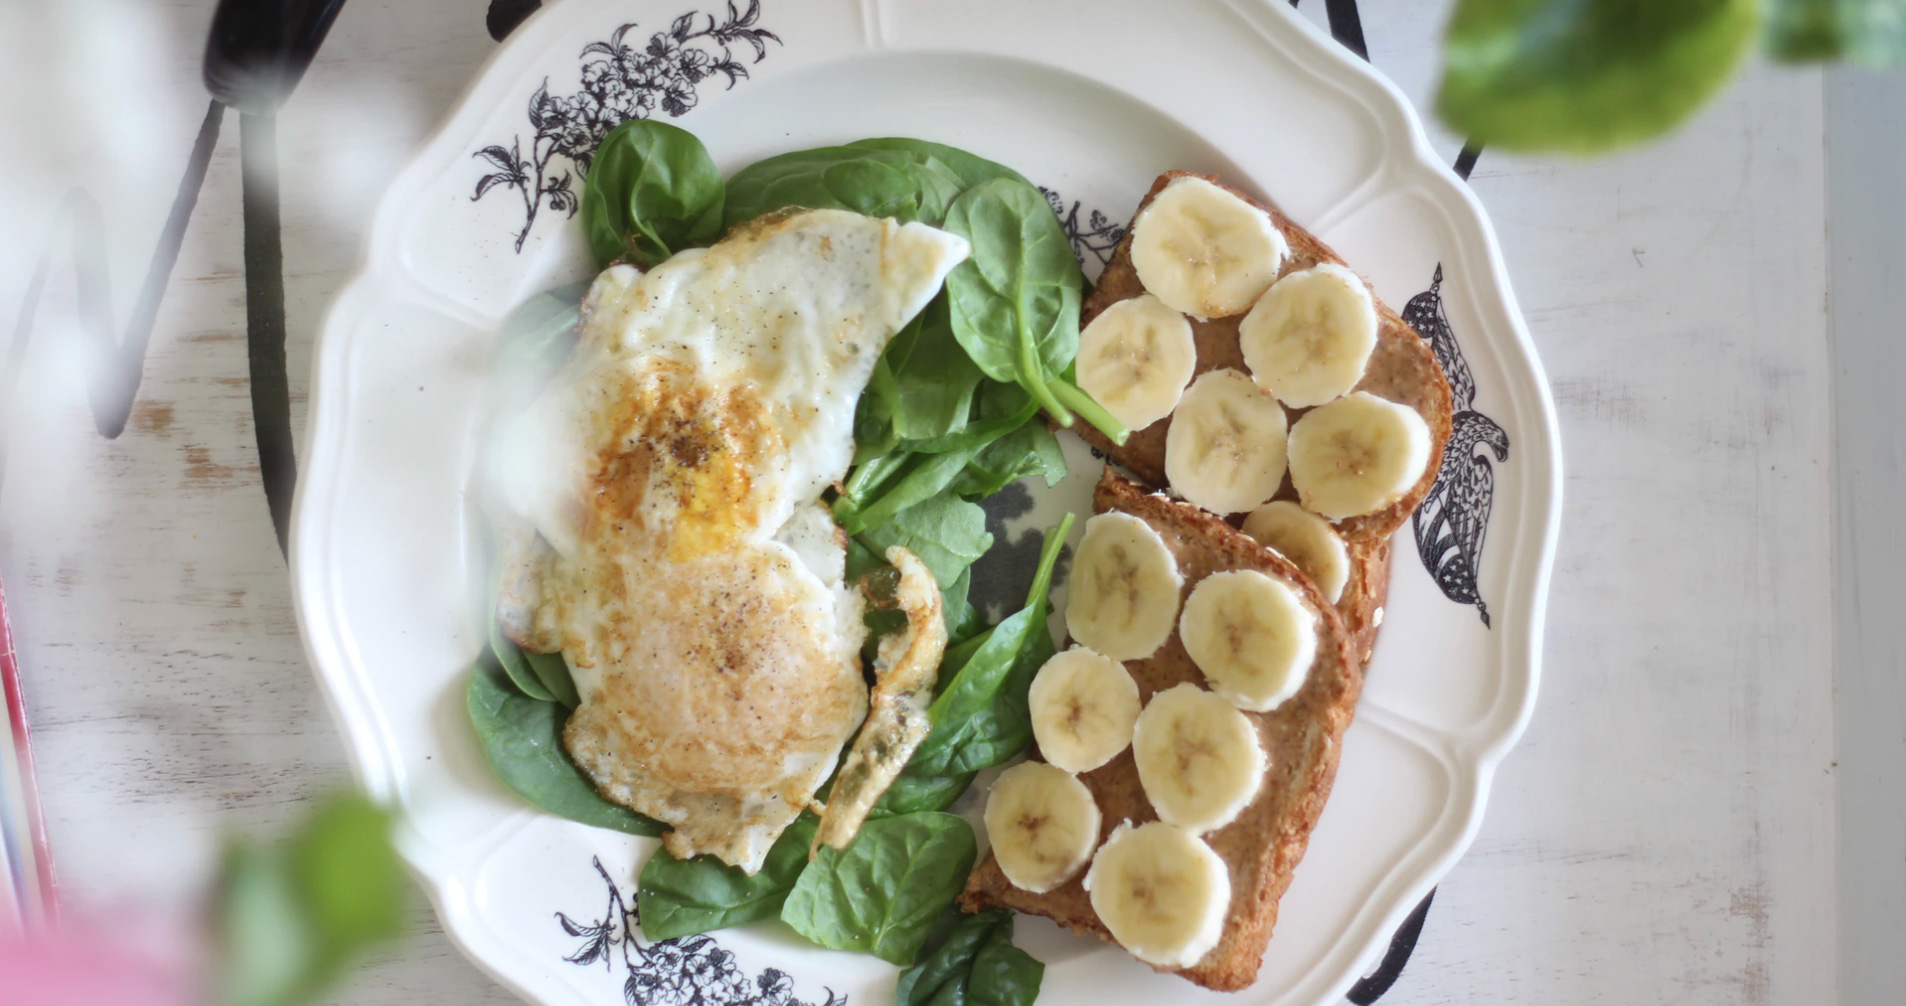 Healthy Breakfast of eggs spinach, bananas, and whole-wheat toast - Unsplash: Naomi Irons